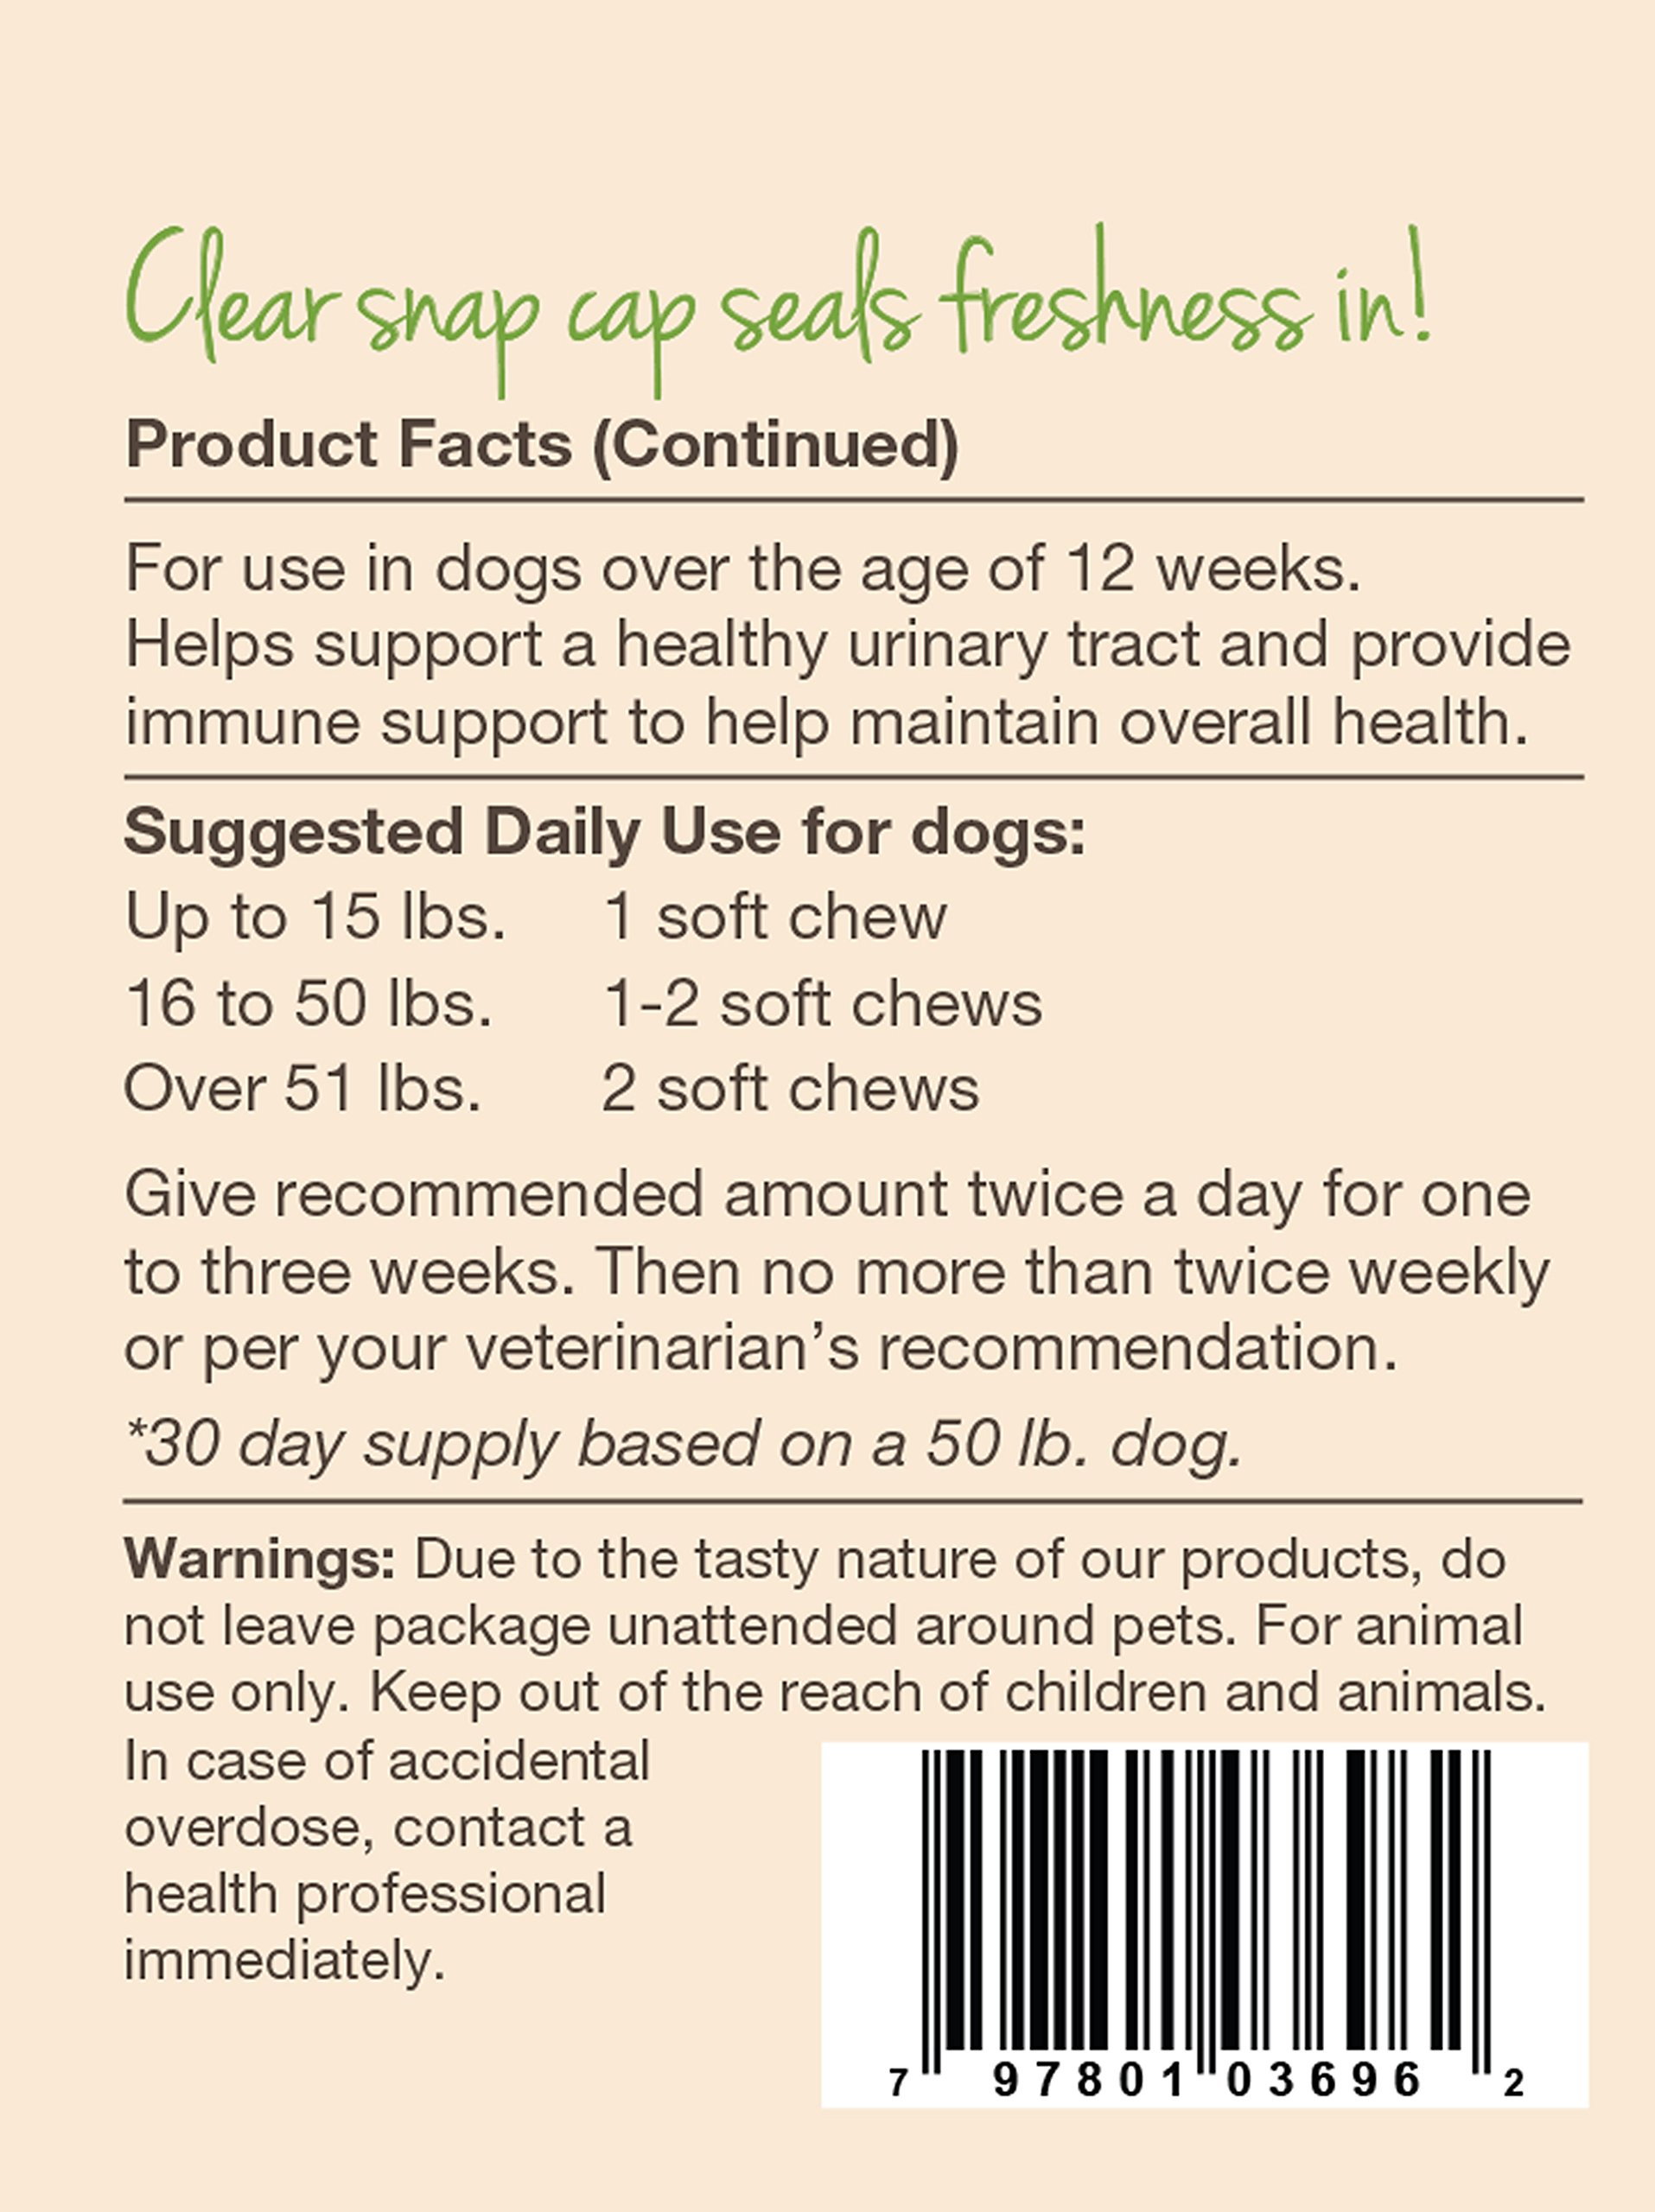 NaturVet Urinary Health Supplement Soft Chews for Dogs, Healthy Bladder & Urinary Tract Support with Cranberry & Echinacea, Made by NaturVet (Image #3)